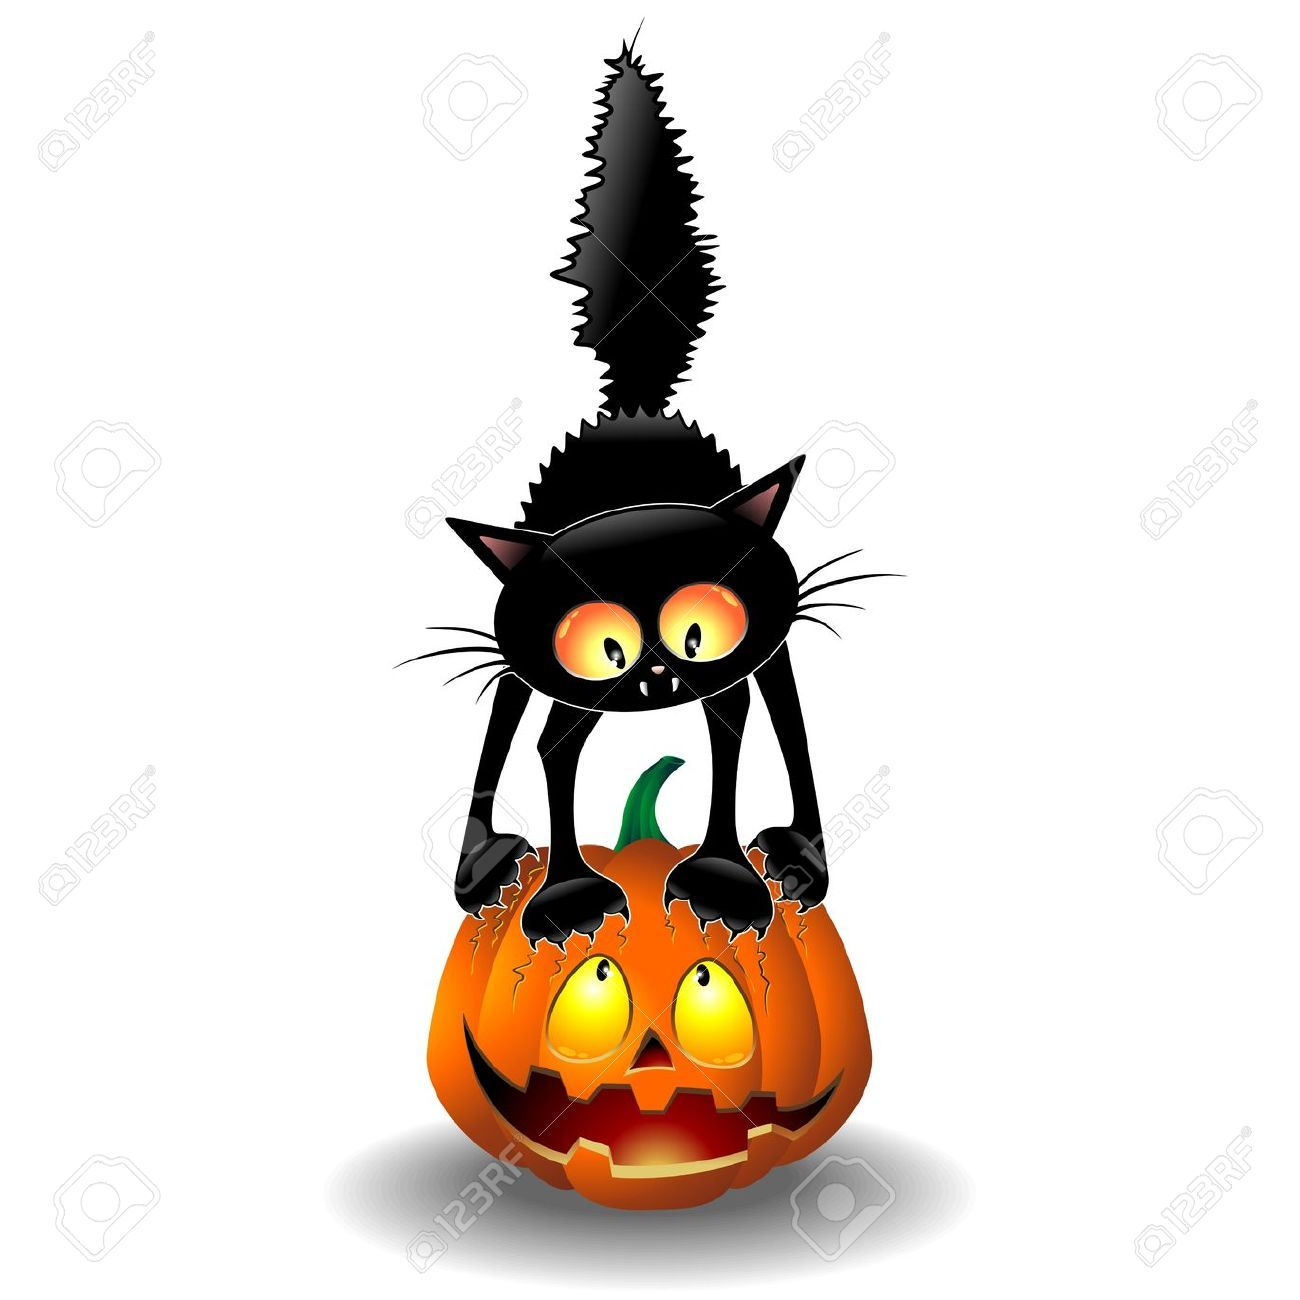 1300x1300 Scared Halloween Cat Cartoon Scratching A Pumpkin So Cute